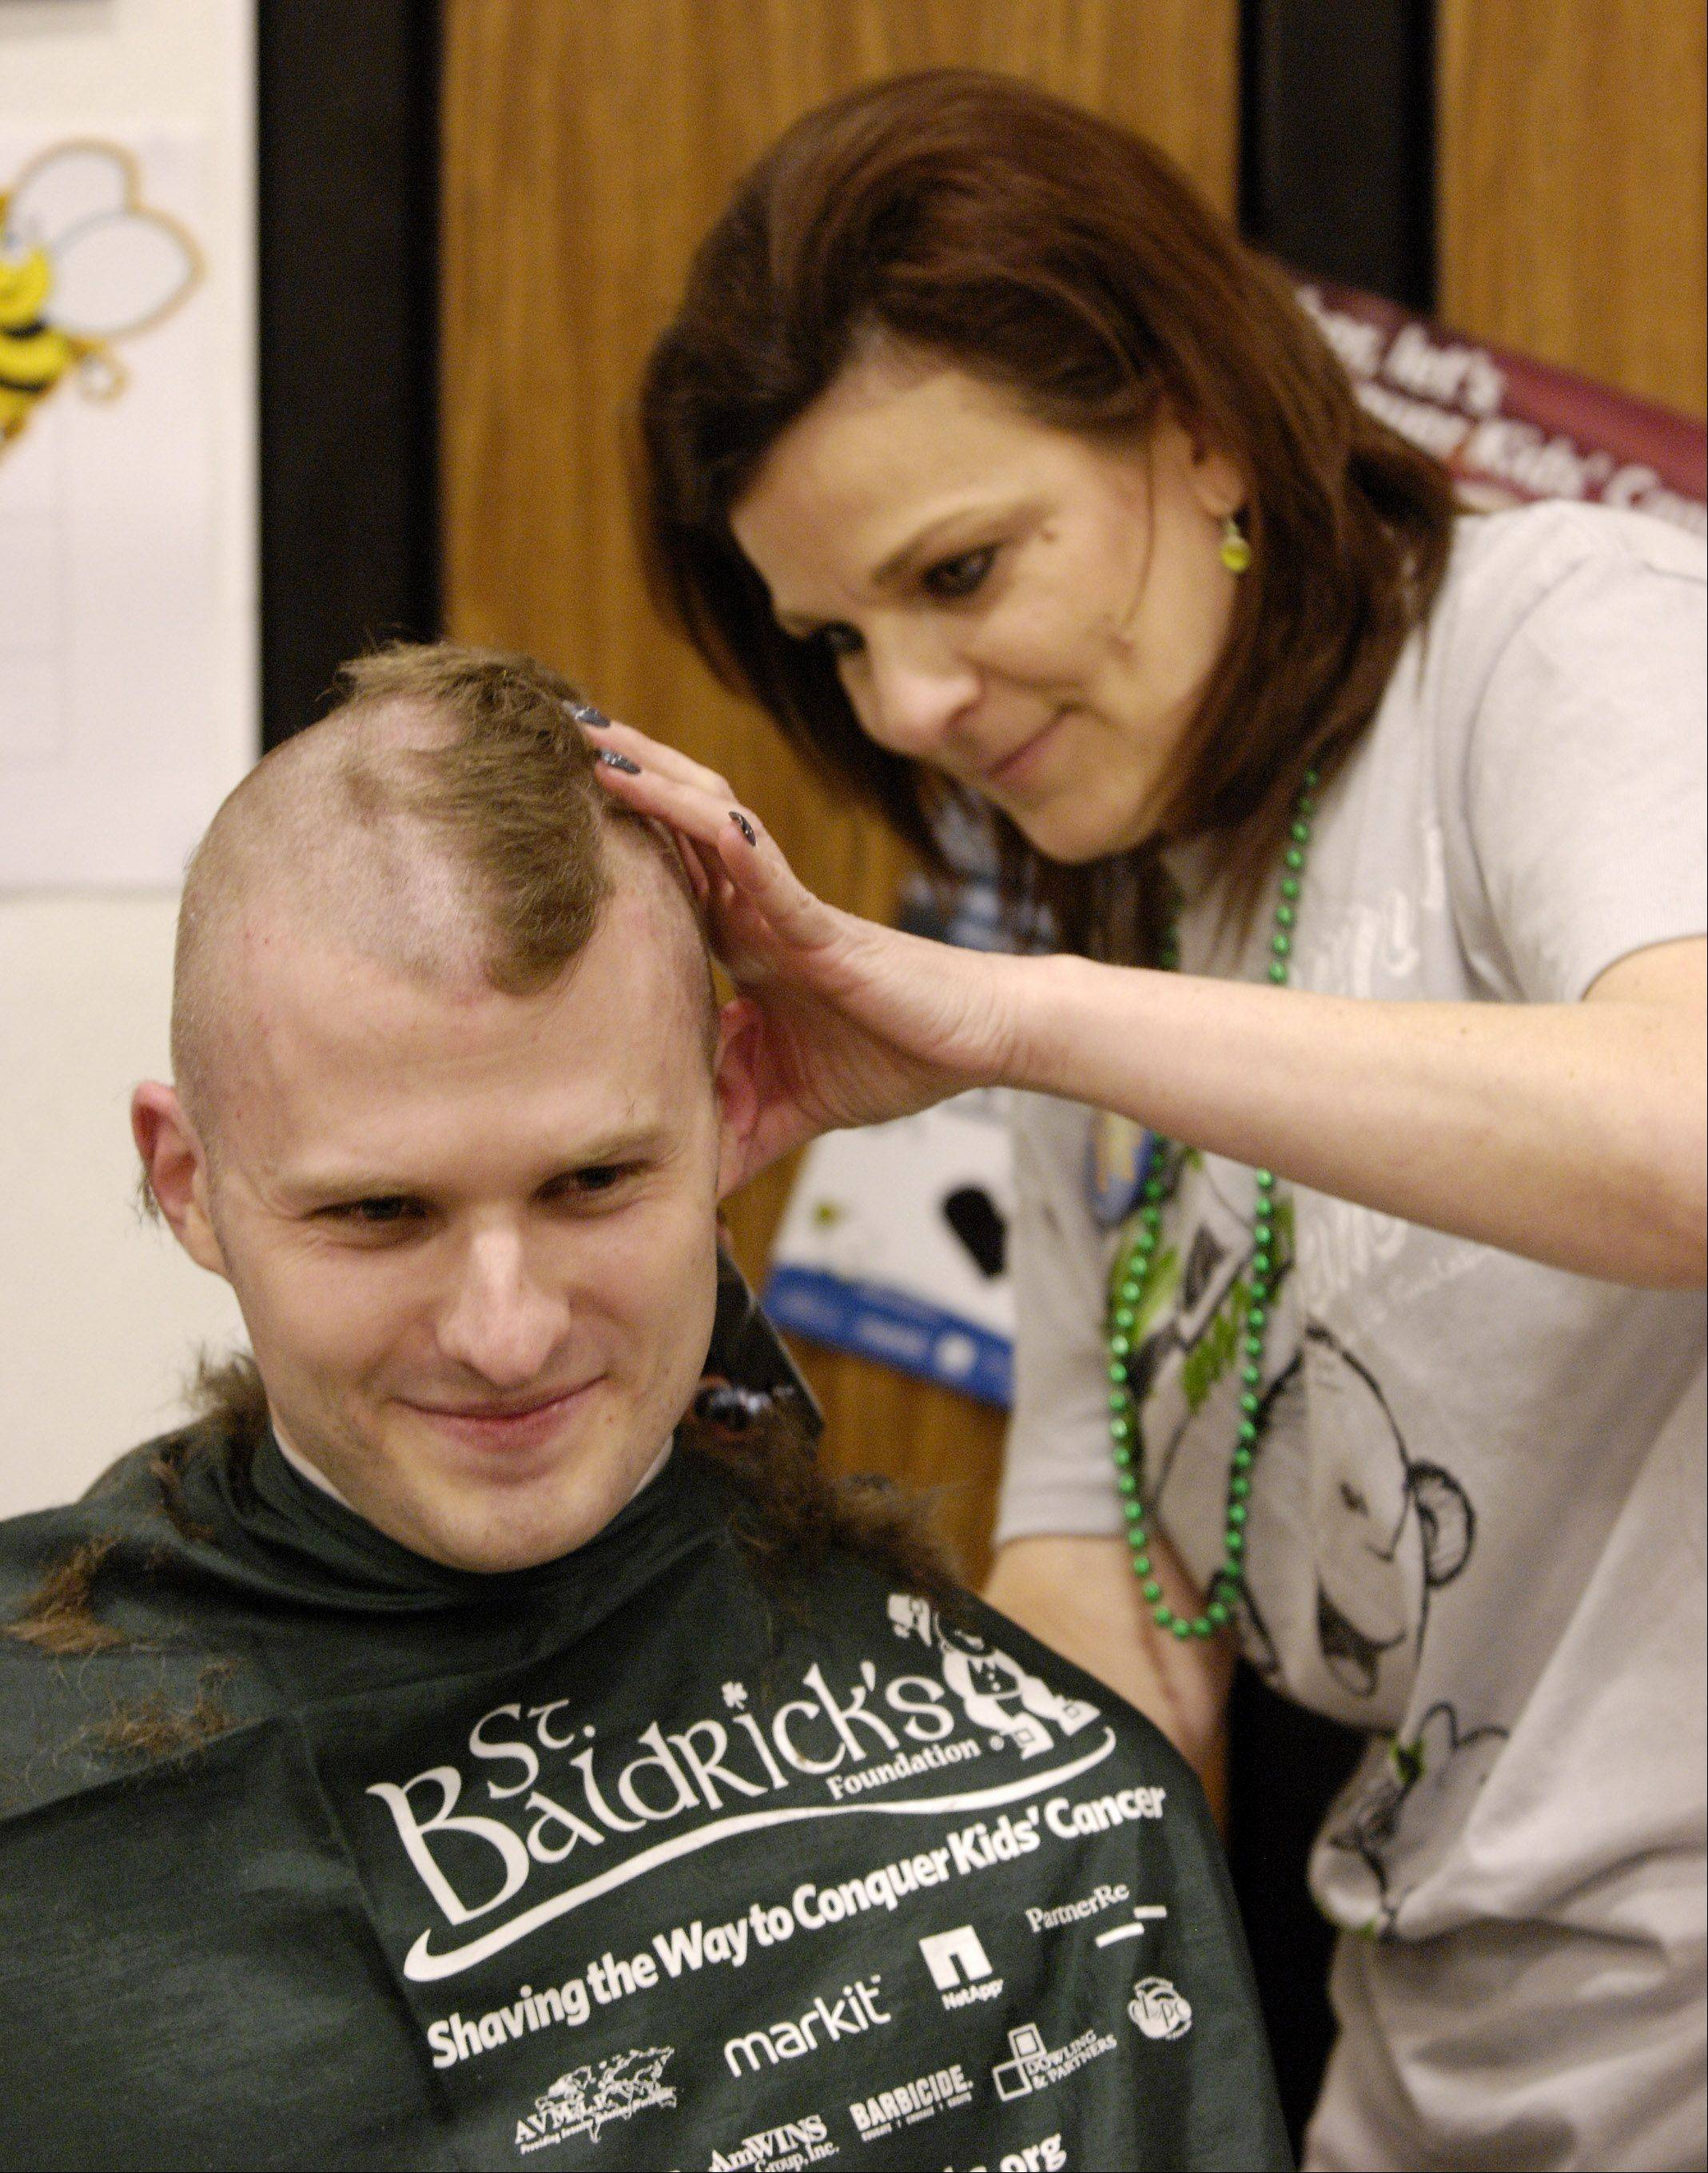 Joshua Kairis of South Elgin and the computer teacher at Evergreen School, has his head shaved by Anna Sarnelli during a St. Baldrick's fundraiser at Evergreen School in Carol Stream, for second grader Jack O'Donoghue who has Burkitt's lymphoma, a non Hodgkin's cancer of the lymphatic system, Sunday.